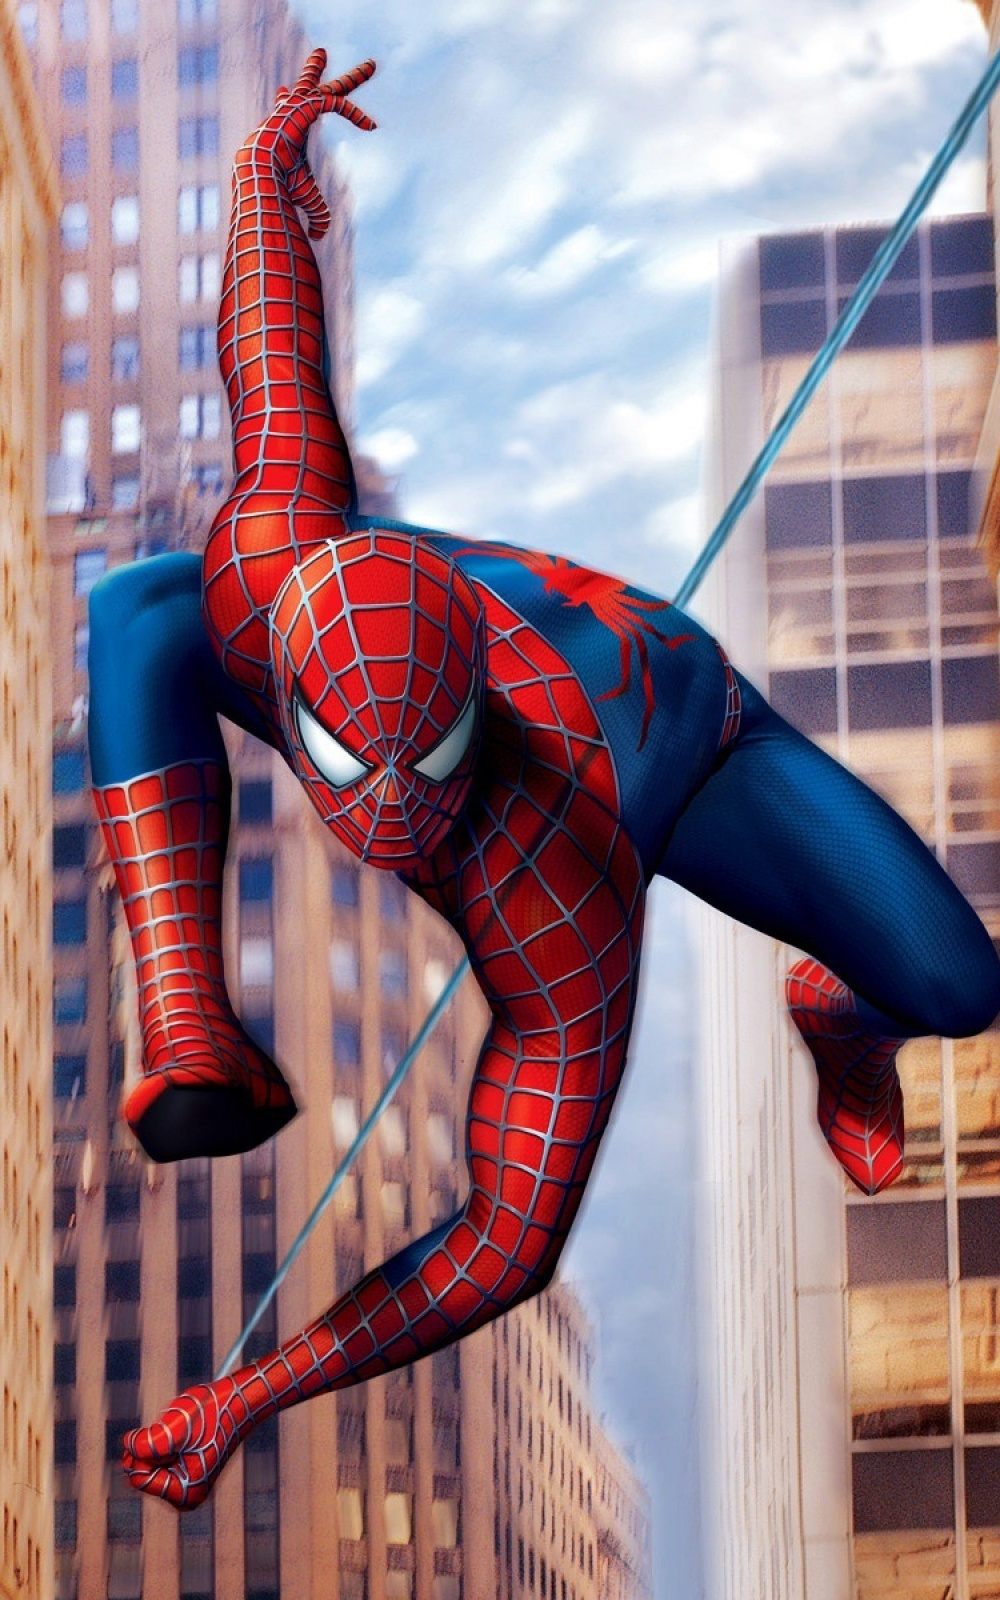 Spiderman Lates Mobile Wallpaper Mobiles Wall